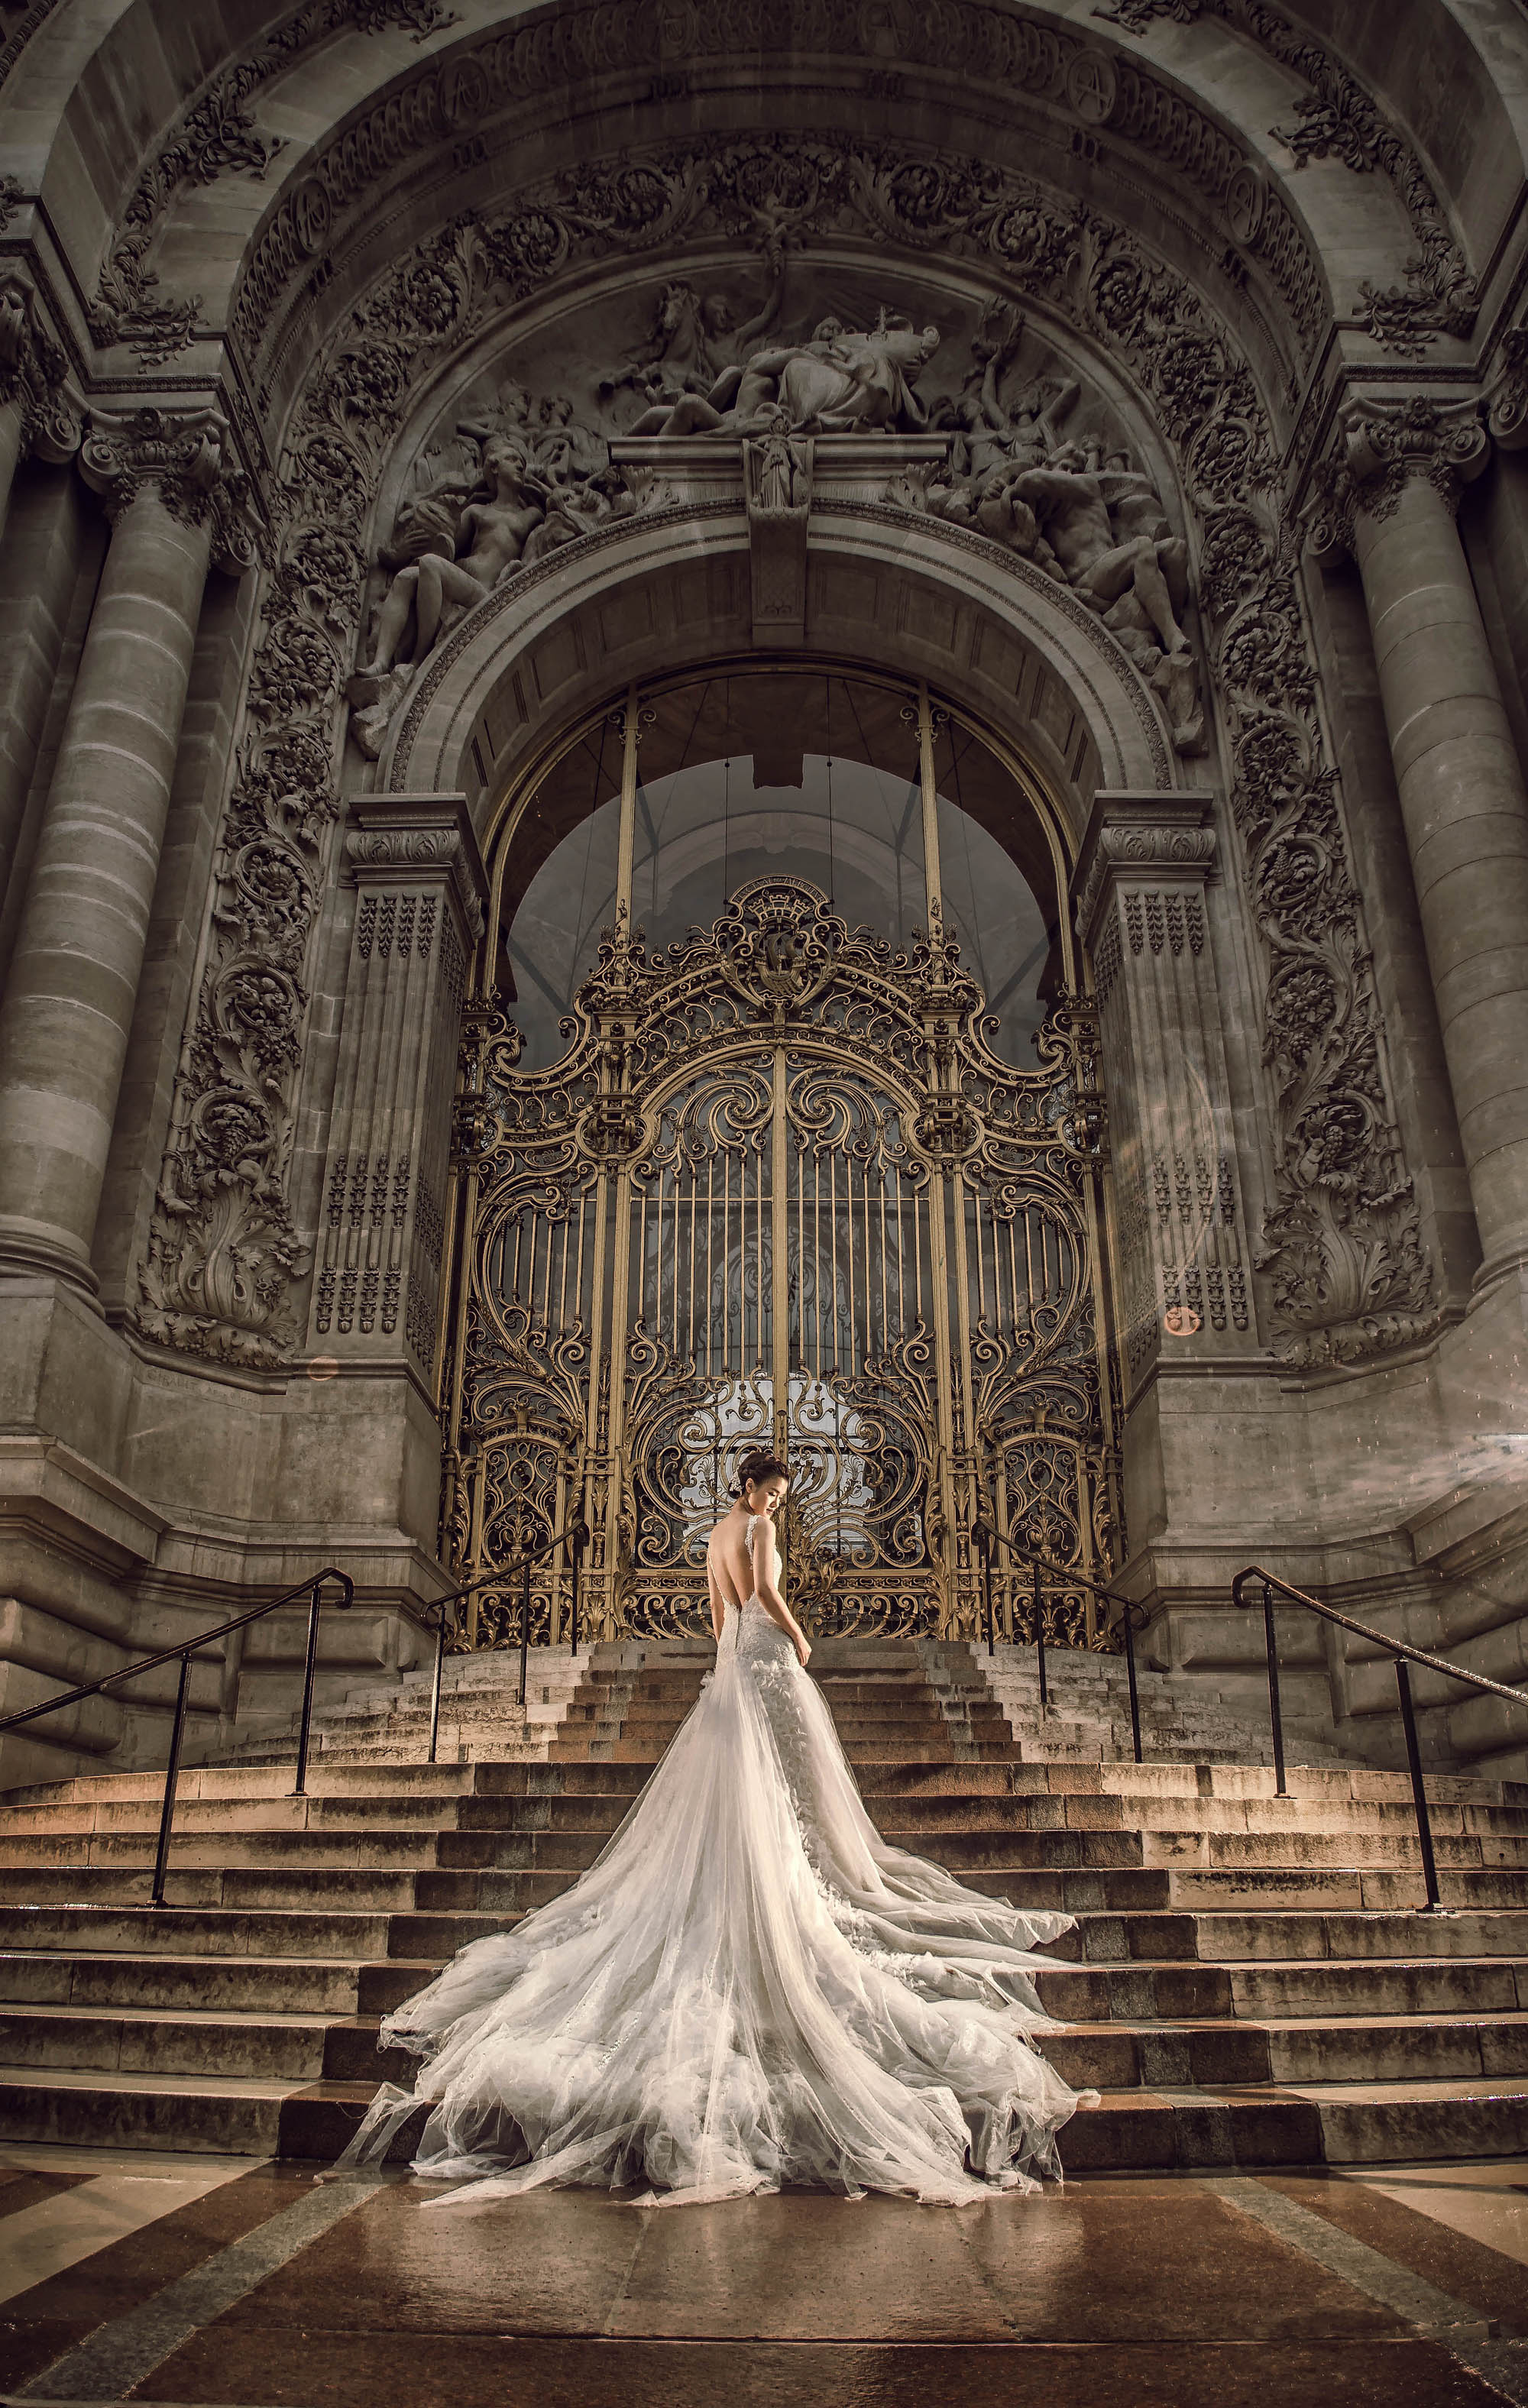 Dramatic bride in tulle and beaded gown in front of historic cathedral, by CM Leung